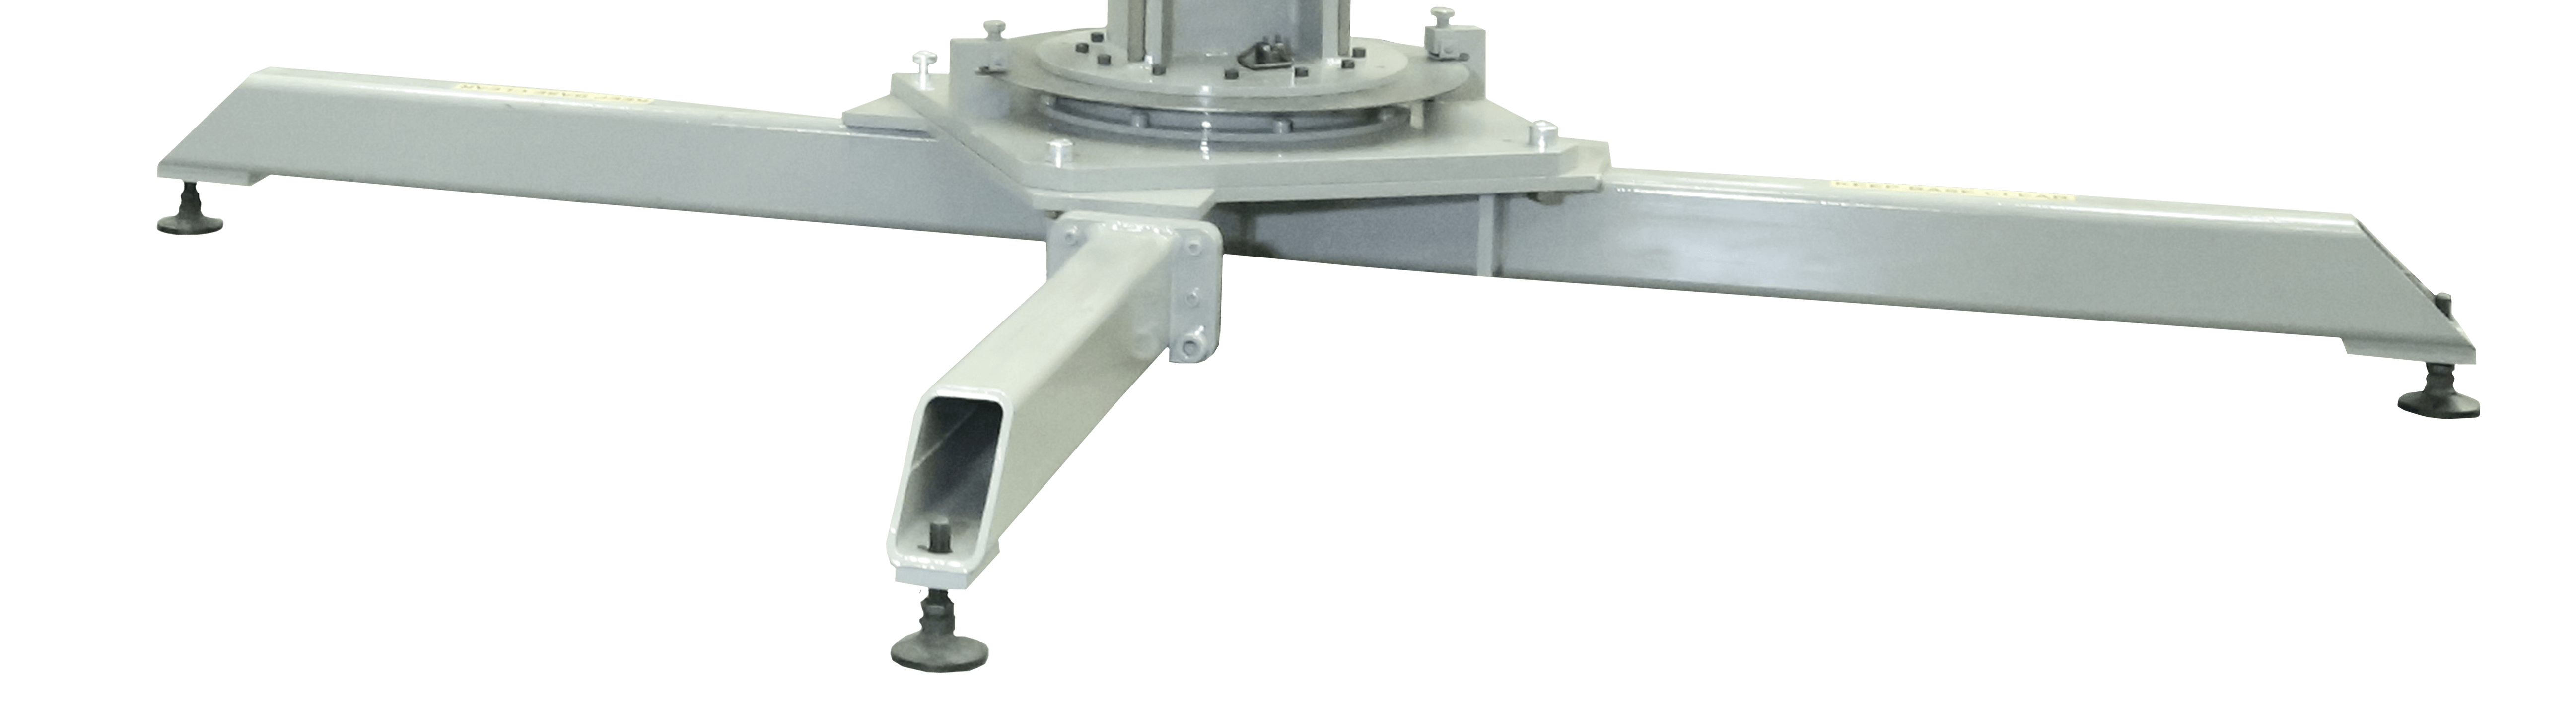 Bases for welding manipulator | Cricket-II